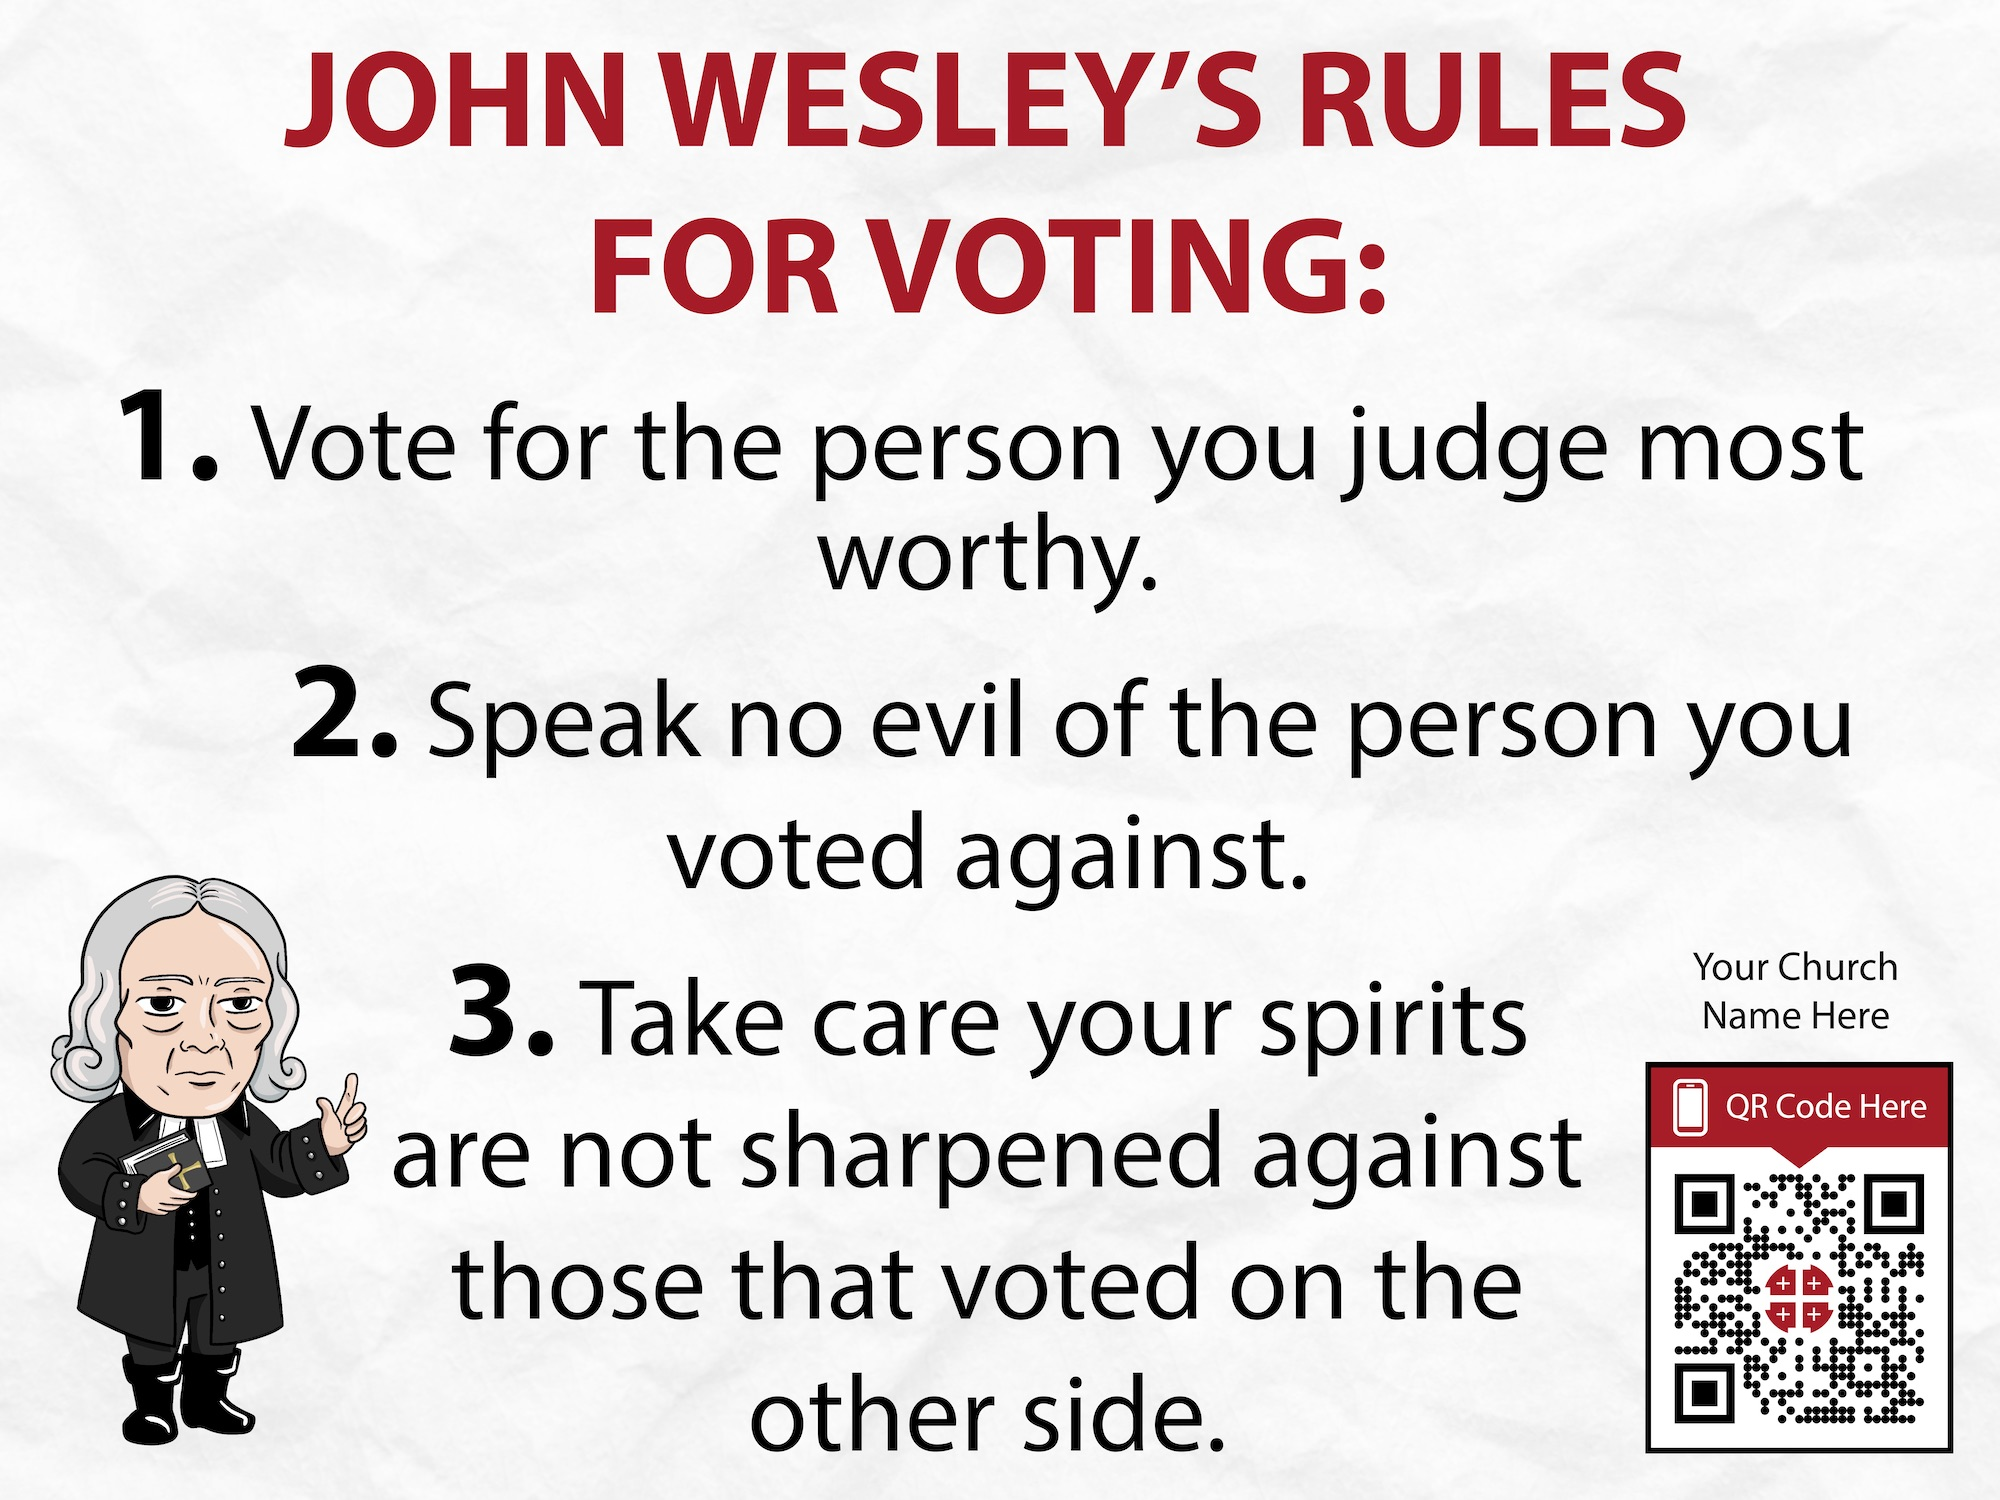 wesley political sign template 2